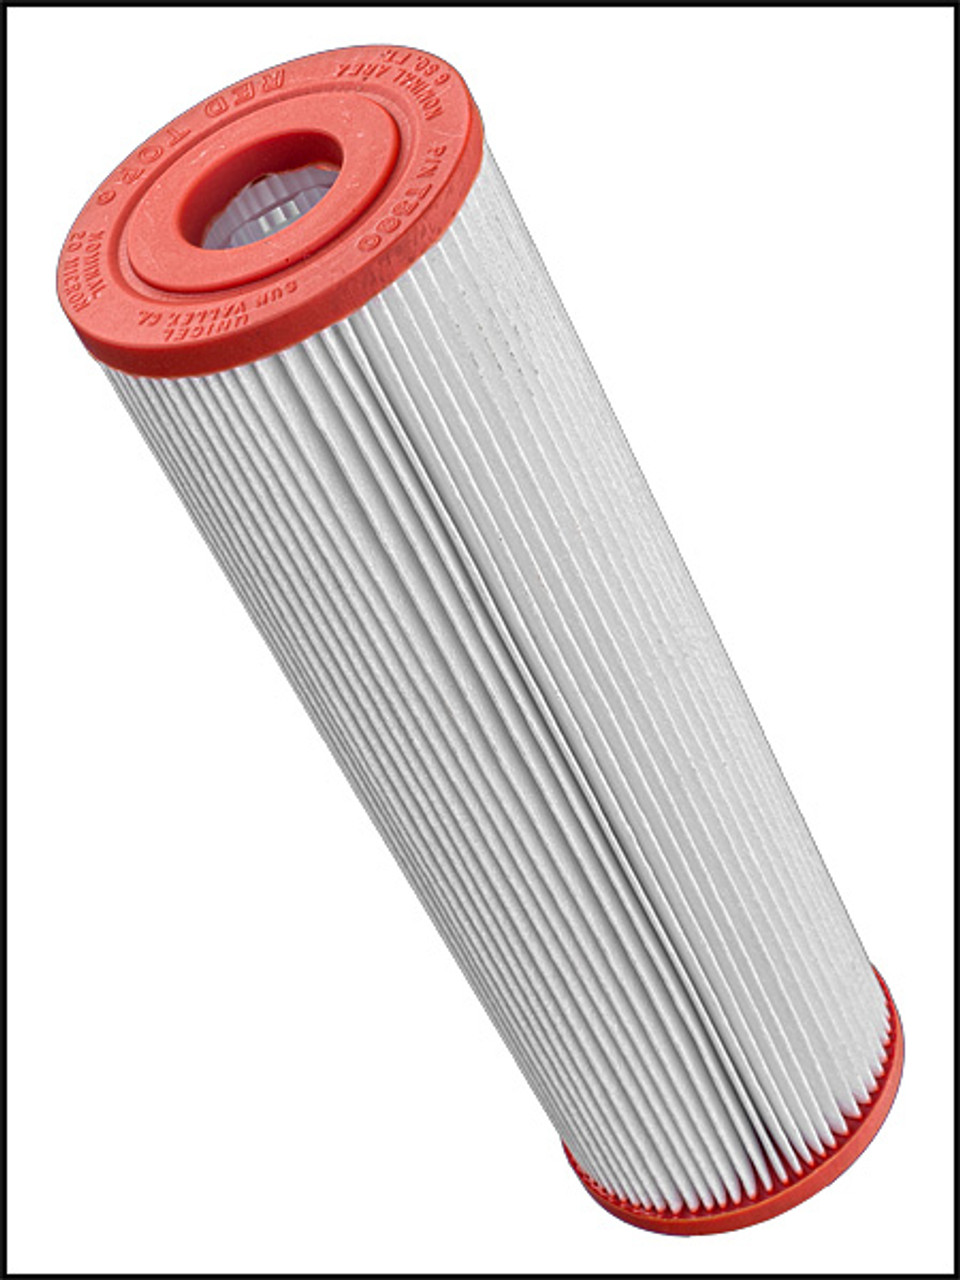 Replacement Filter Cartridge for American, Harmsco ST/6, Pac-Fab, Premier, Rainbow,  Swimquip 6, 108, 216, 72, SwimRite, Universal Six - Replaces: Unicel: T-380 - Filbur: FC-3060 - Pleatco: PH6-4